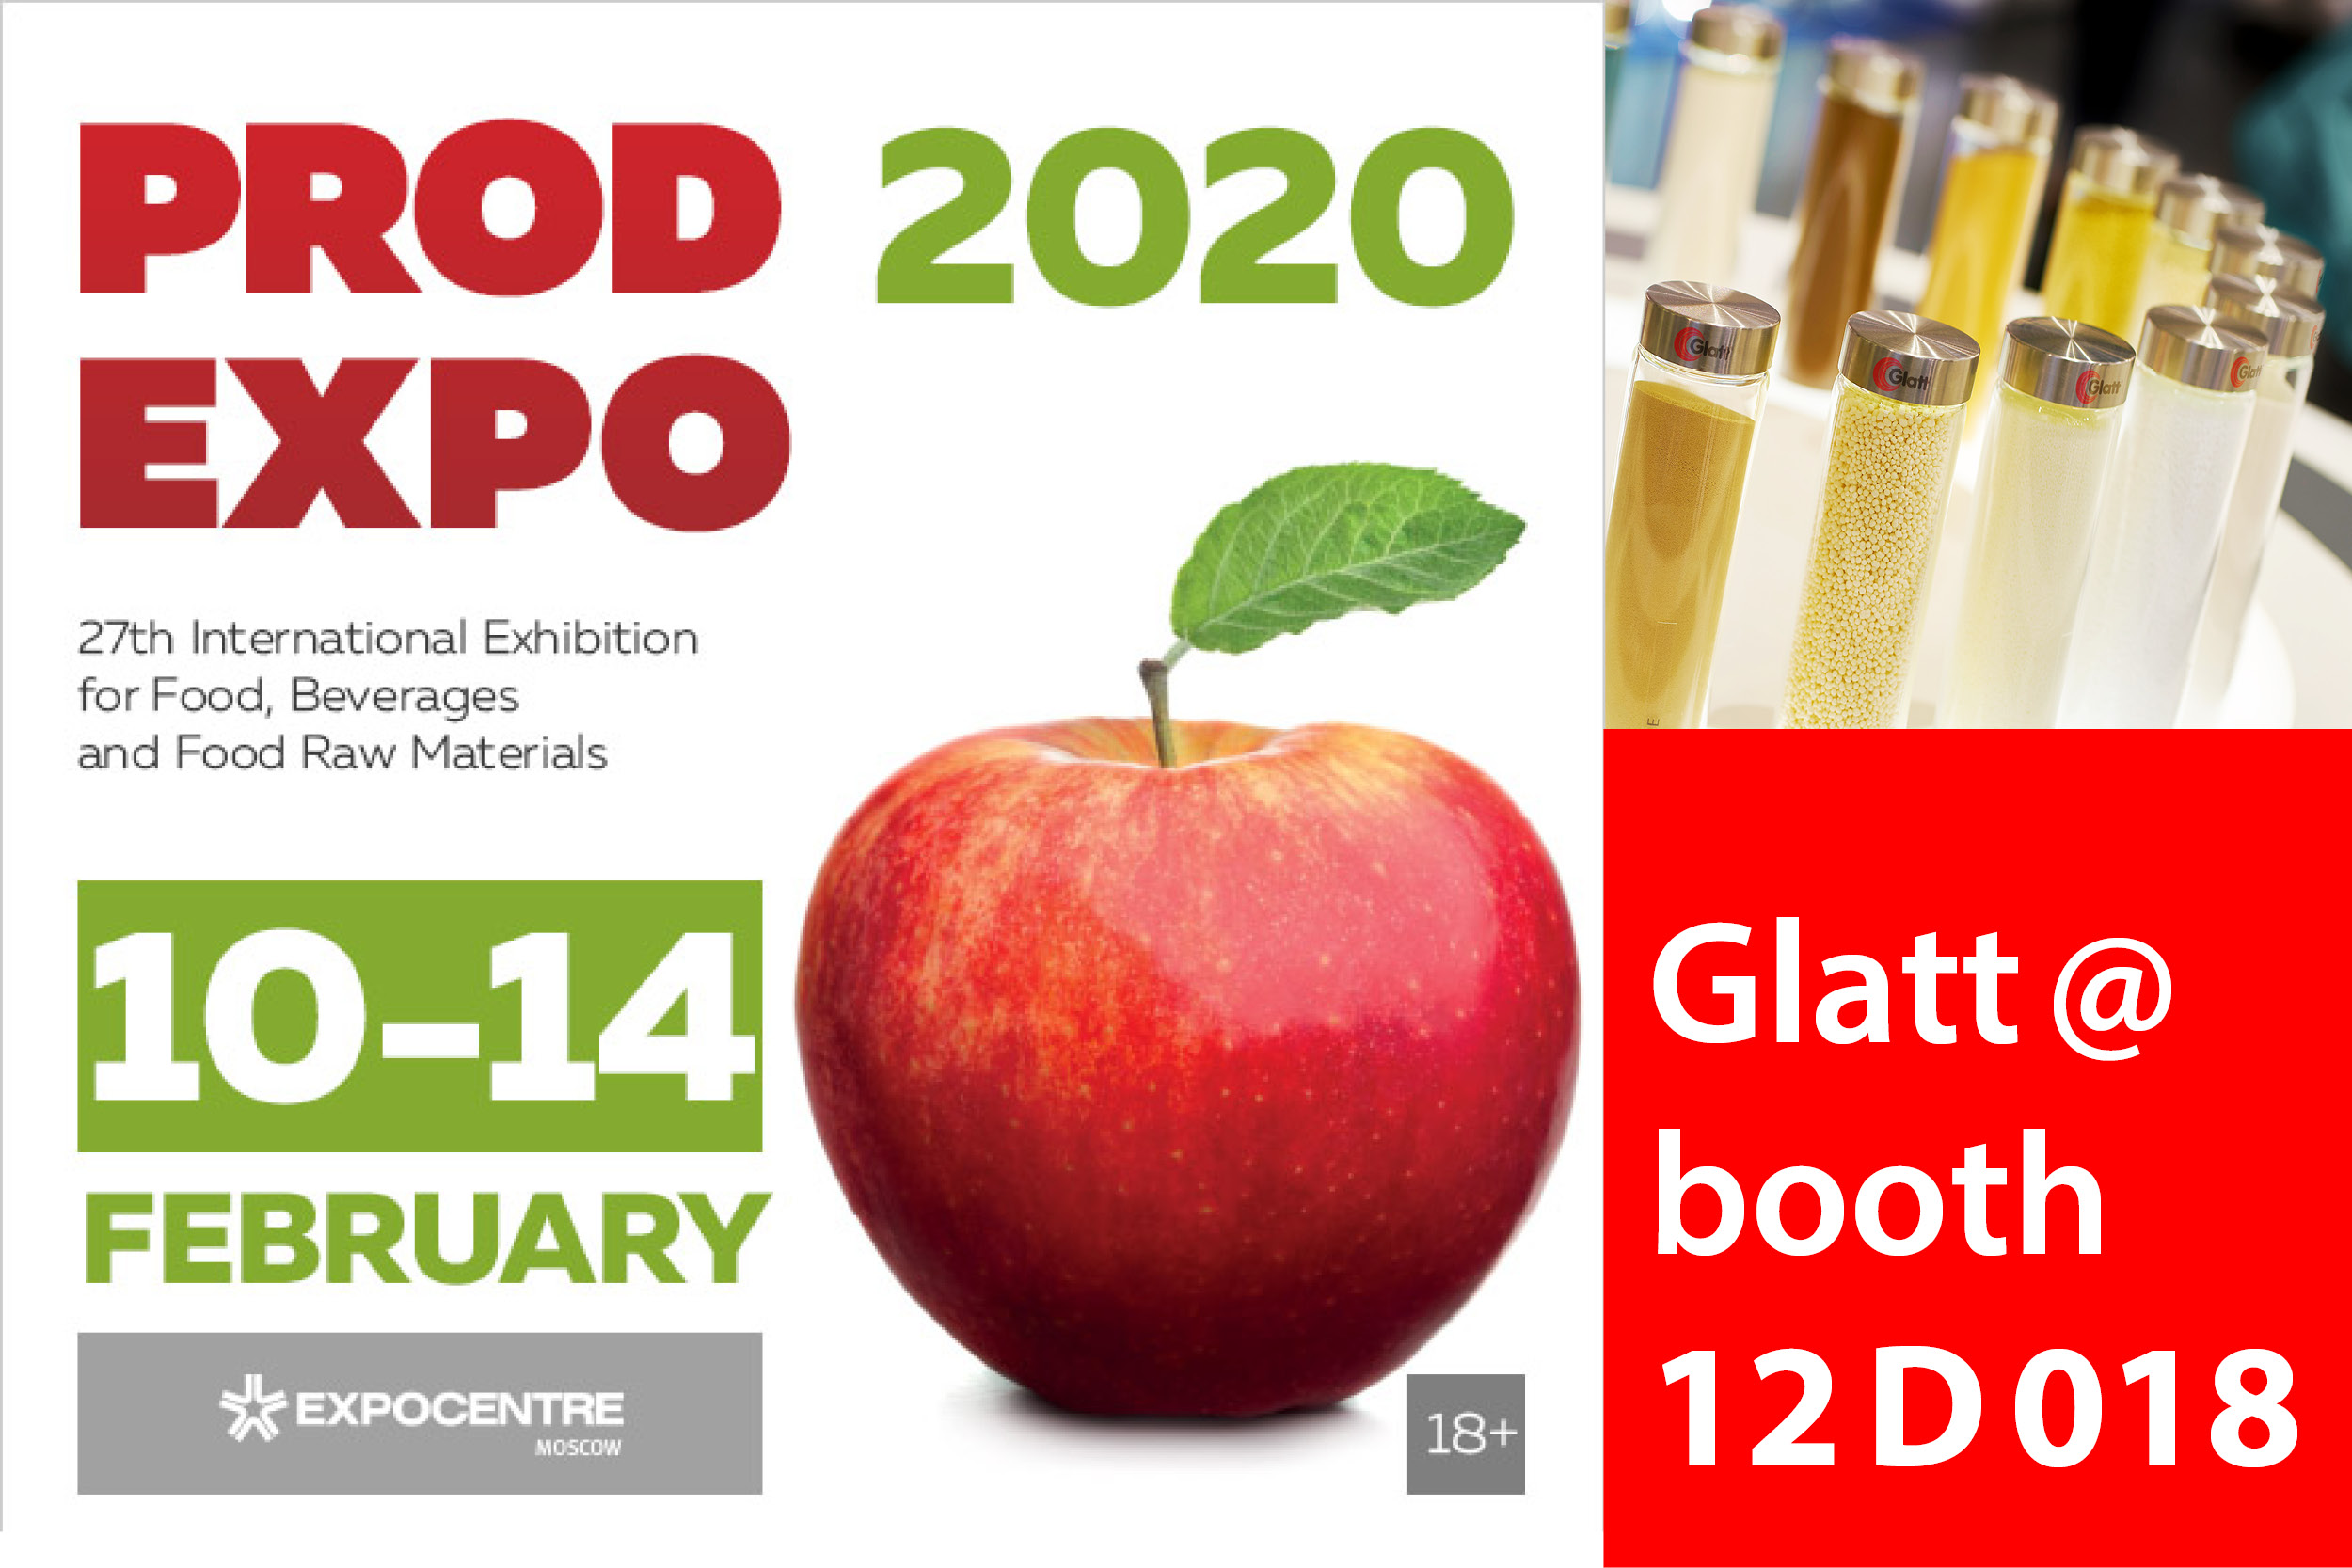 Glatt. Meet the Experts @ booth 12D018, PRODEXPO, 10-14 Jan 2020 in Moscow, Russia